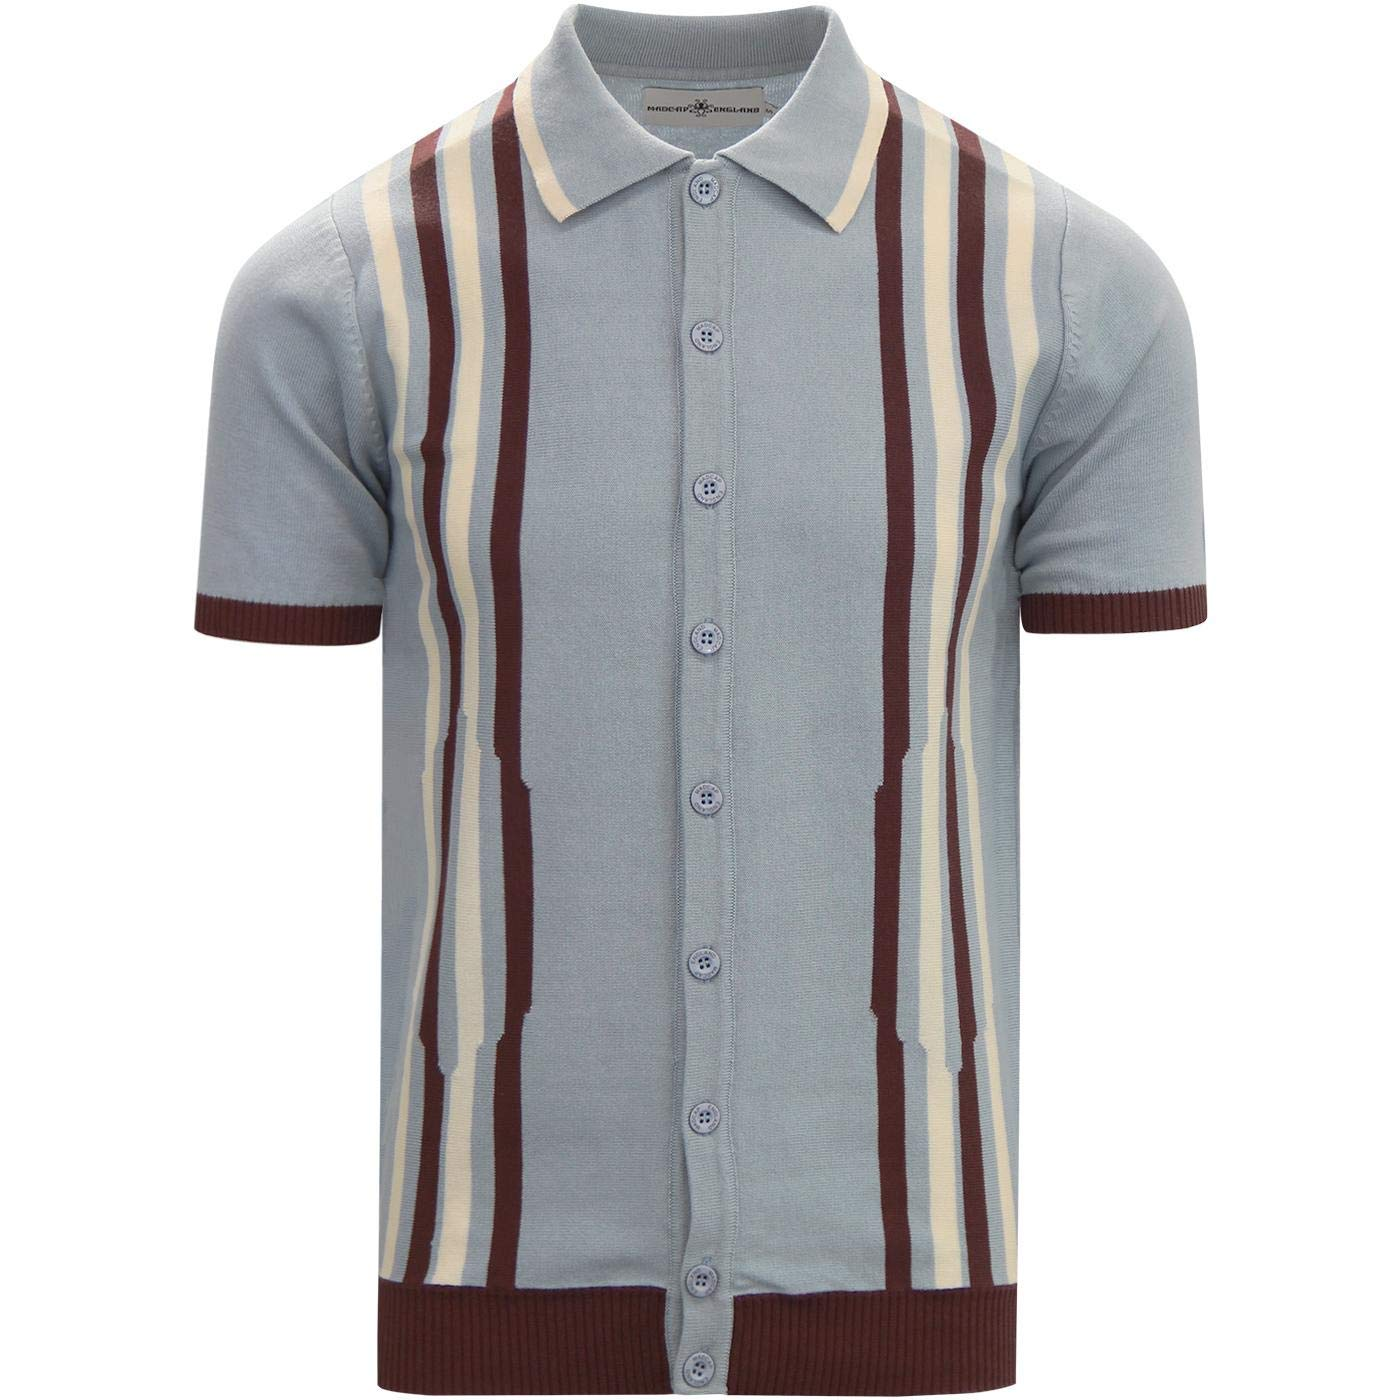 1960s – 70s Mens Shirts- Disco Shirts, Hippie Shirts Madcap England Shockwave Mens Retro Mod 60s 70s Short Sleeve Knitted Polo Cardigan £34.99 AT vintagedancer.com